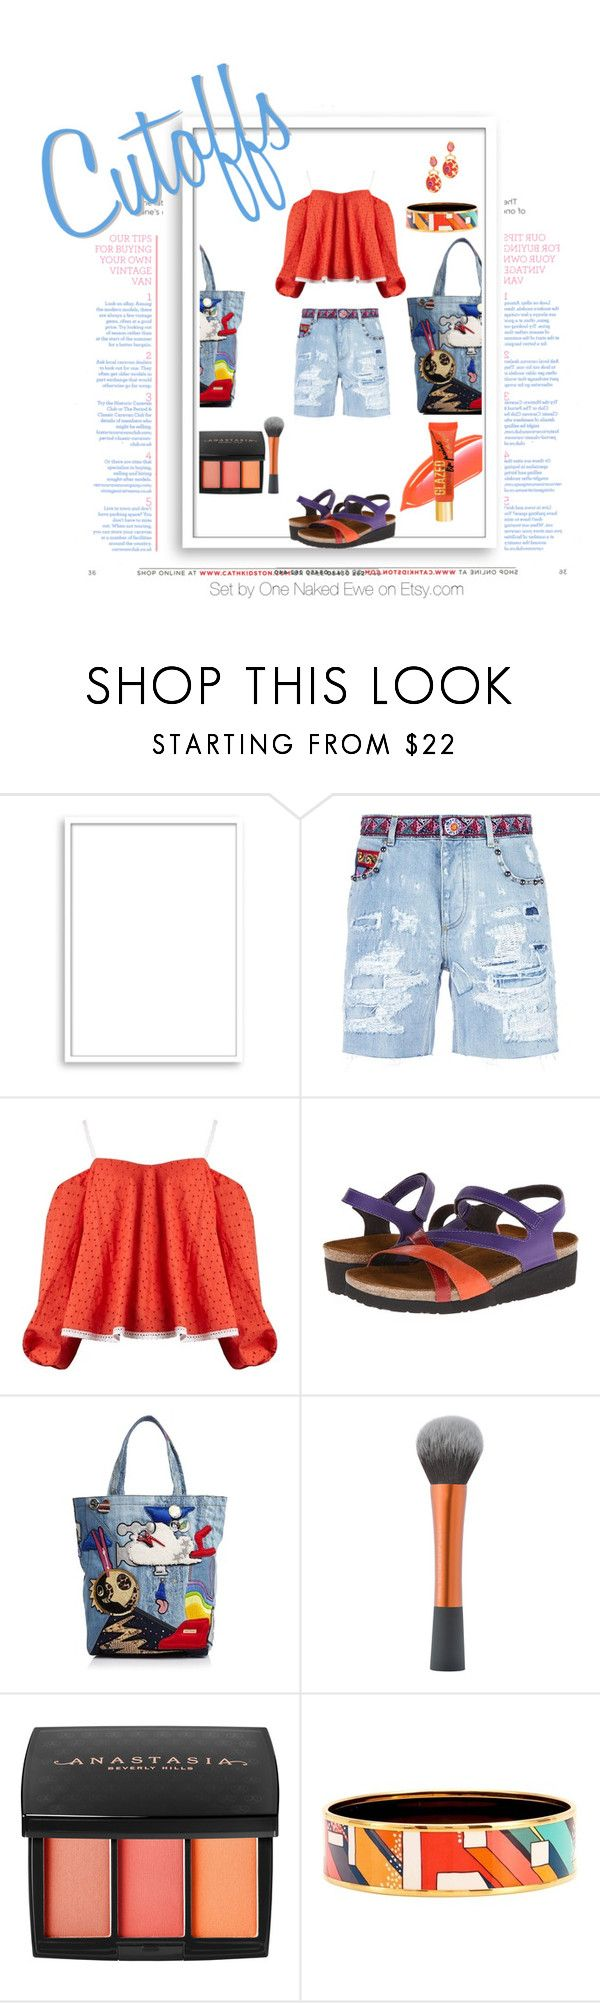 """Cutoffs"" by onenakedewe ❤ liked on Polyvore featuring Bomedo, Dolce&Gabbana, Anna October, Naot, Marc Jacobs, Anastasia Beverly Hills, Hermès, Oscar de la Renta, DENIMCUTOFFS and denimshorts"